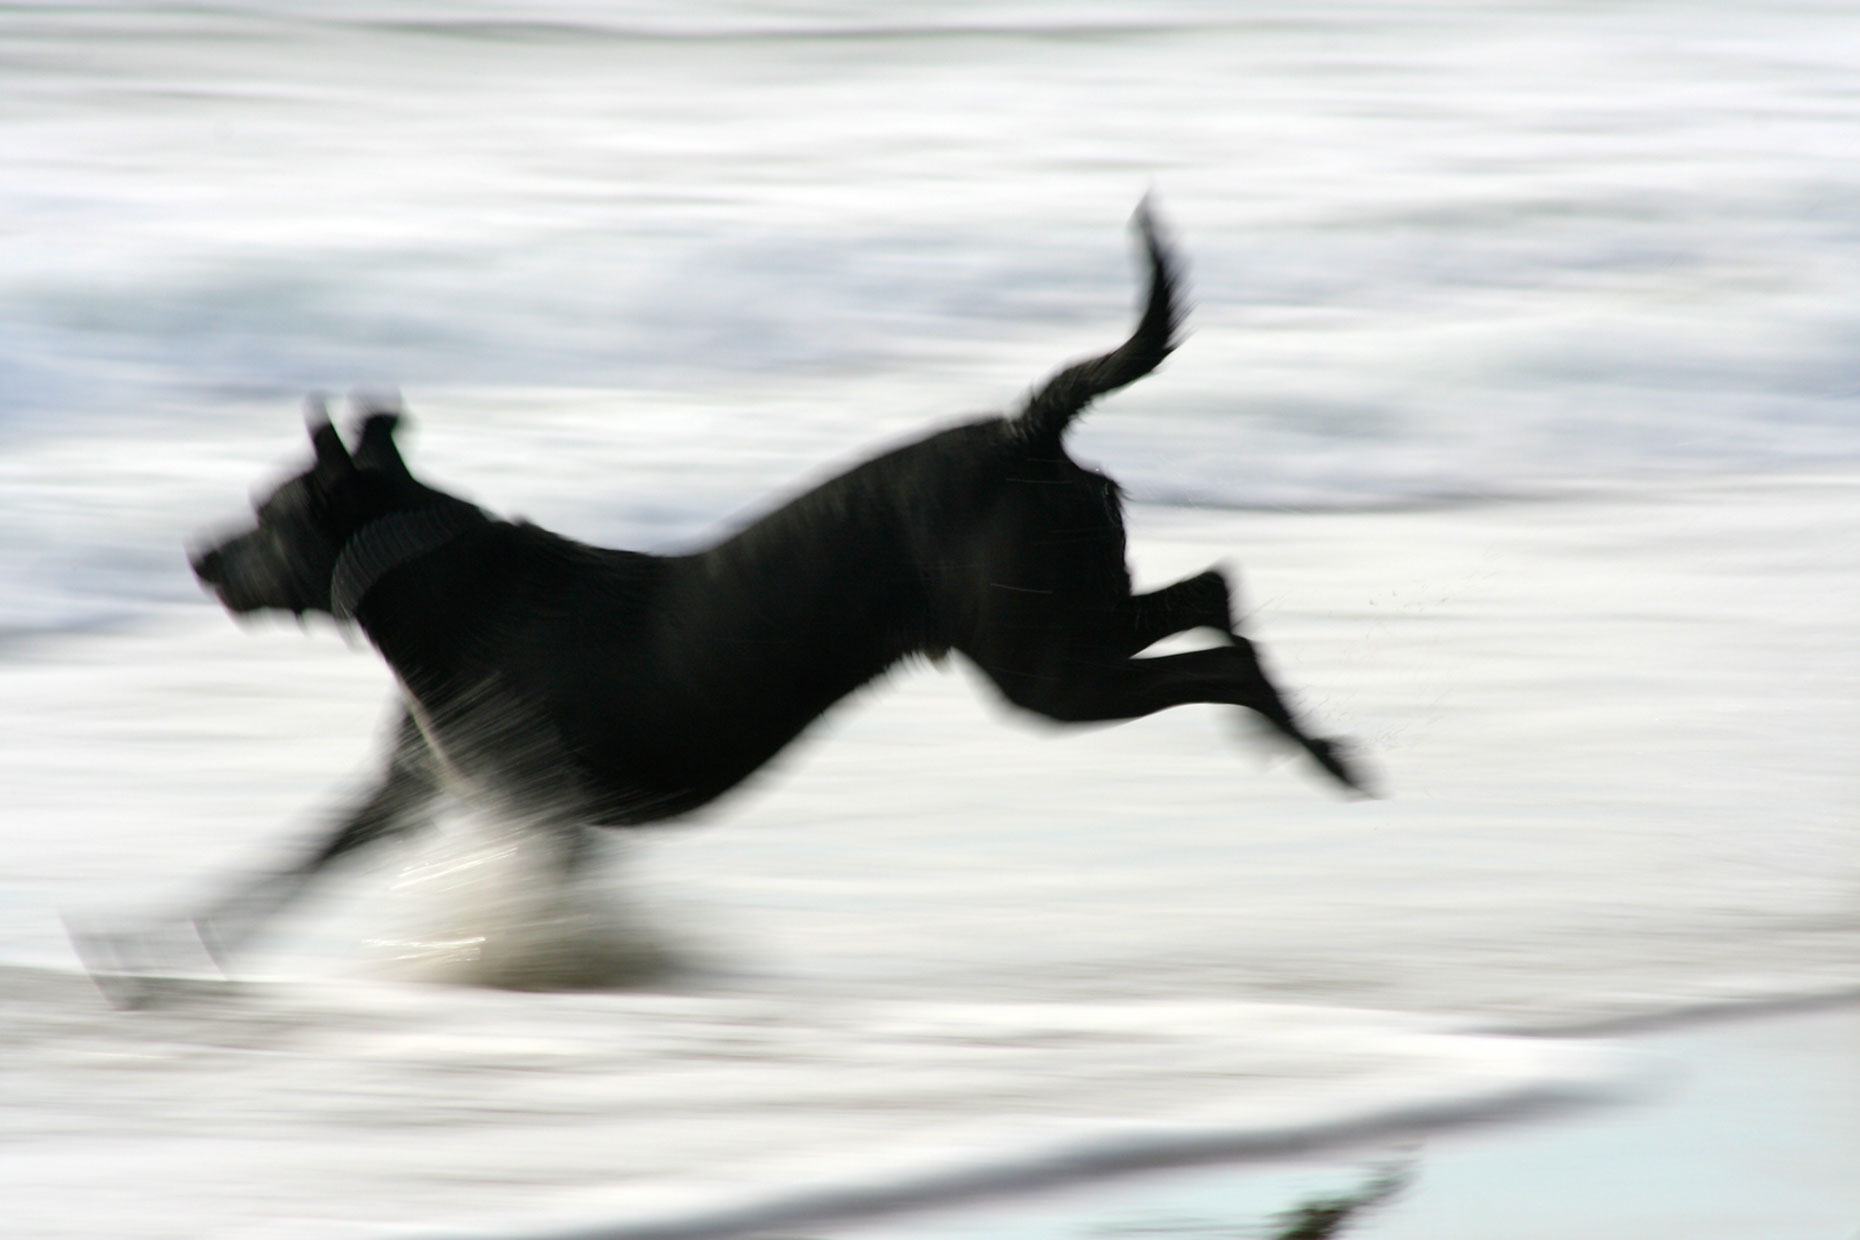 Dog Photography | Dog Running in the Ocean by Mark Rogers